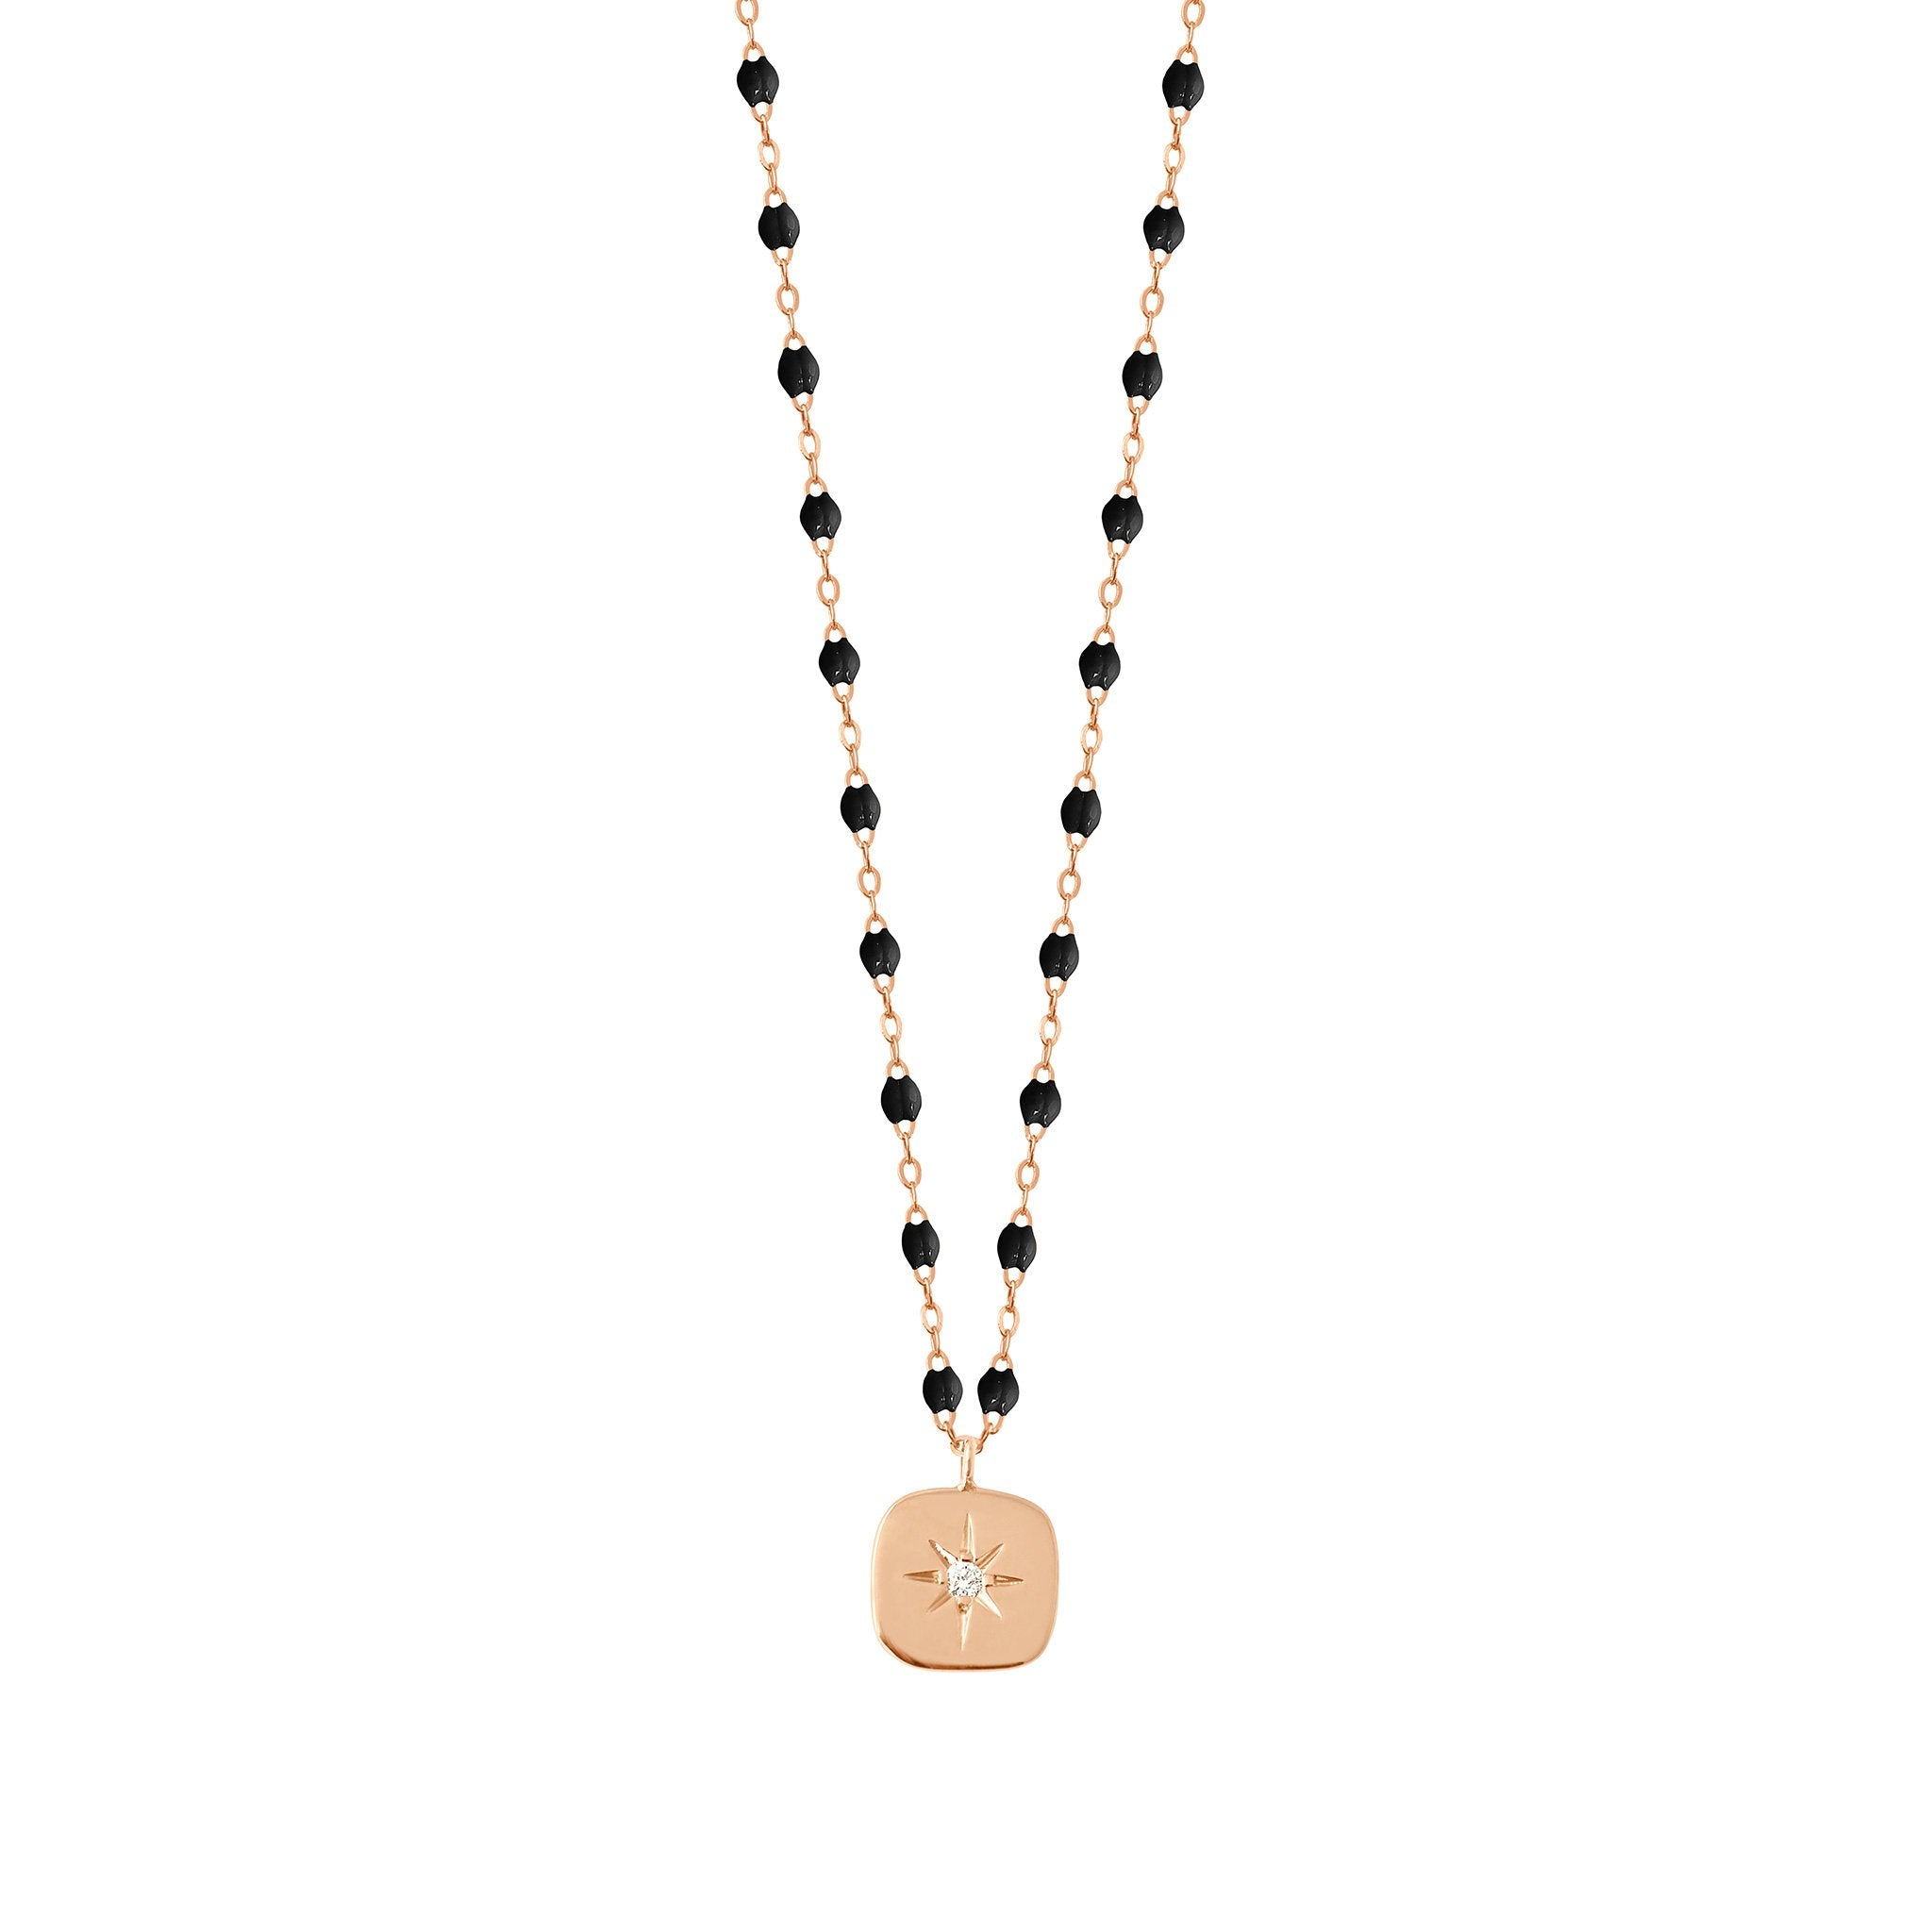 Gigi Clozeau - Miss Gigi Black diamond necklace, Rose Gold, 16.5